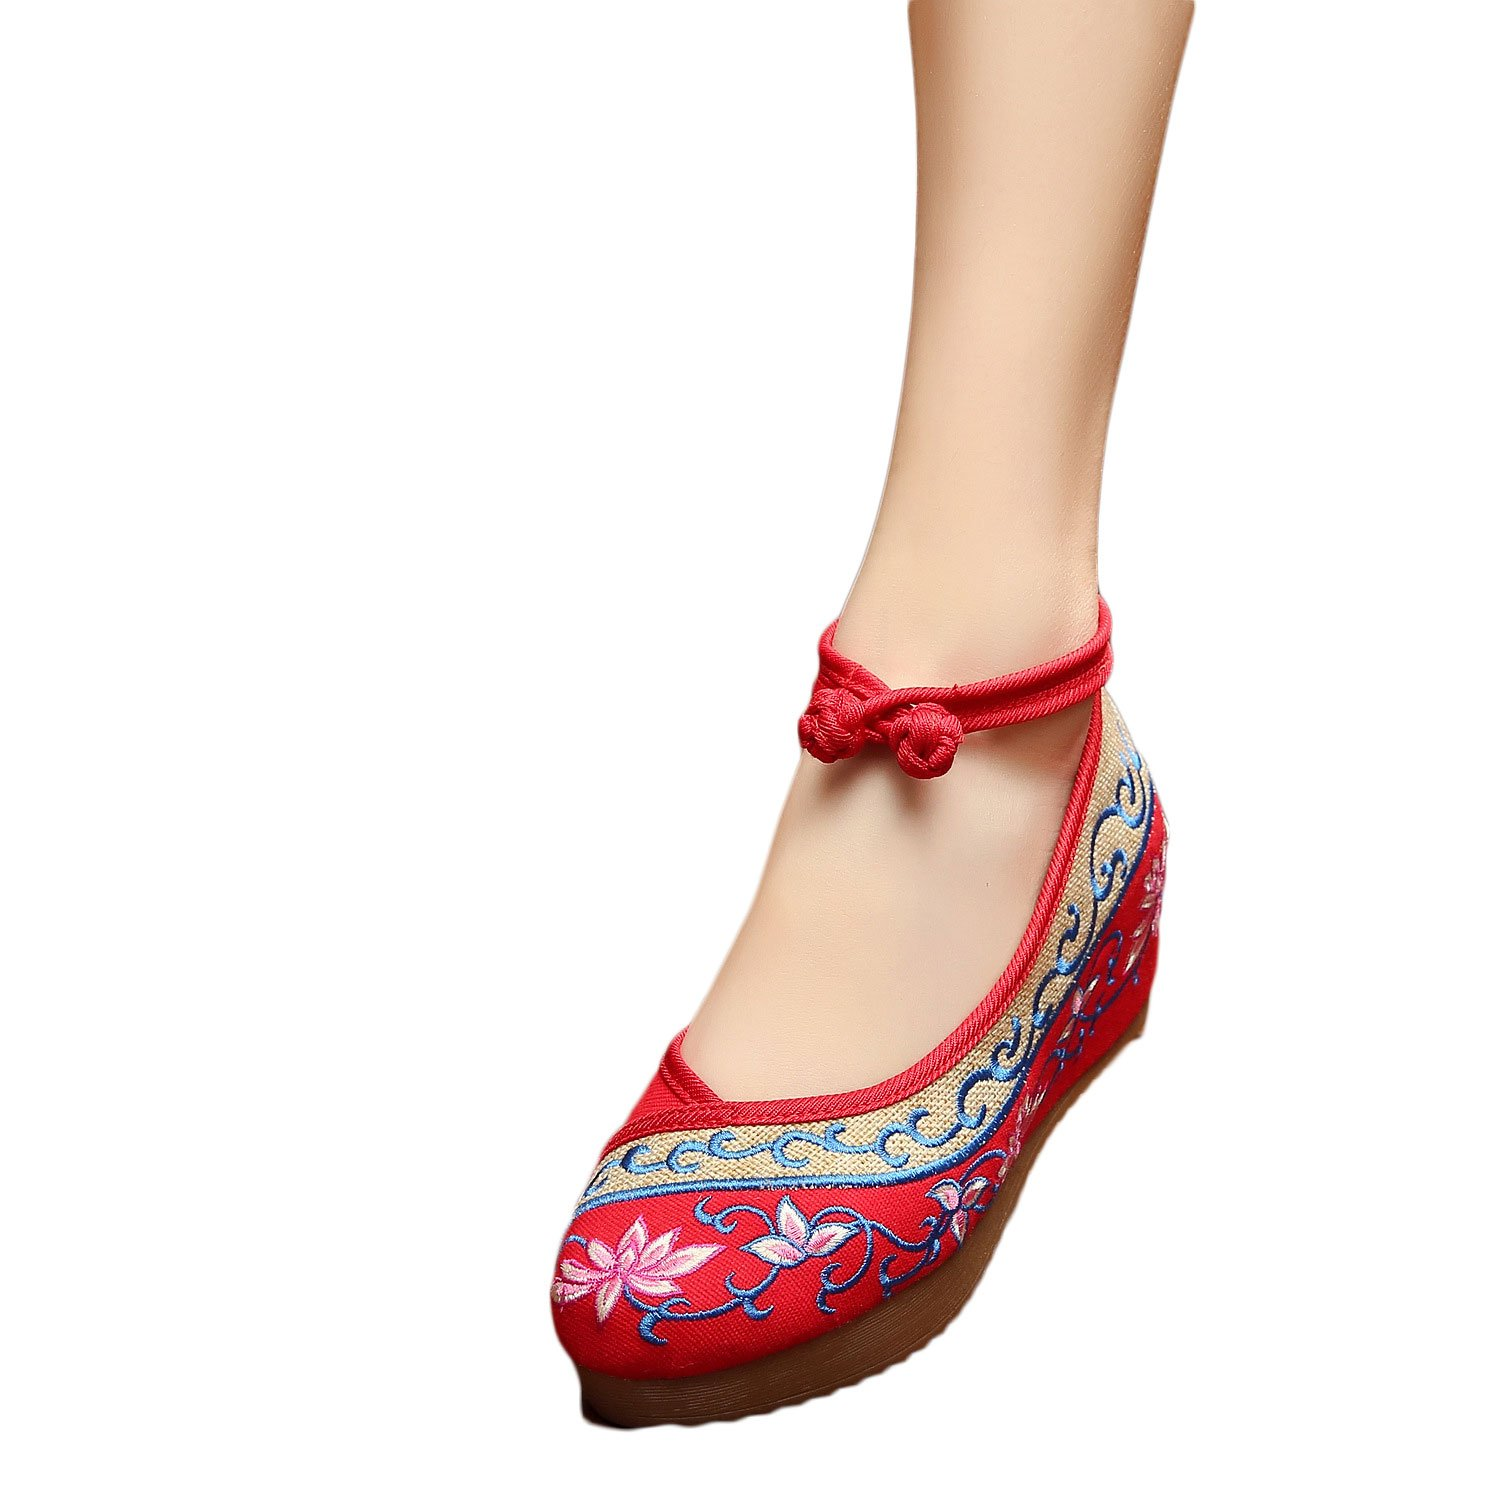 EXCELLANYARD Women's Embroidery Platform Wedges B01KL8GBOE 5 B(M) US 04-red